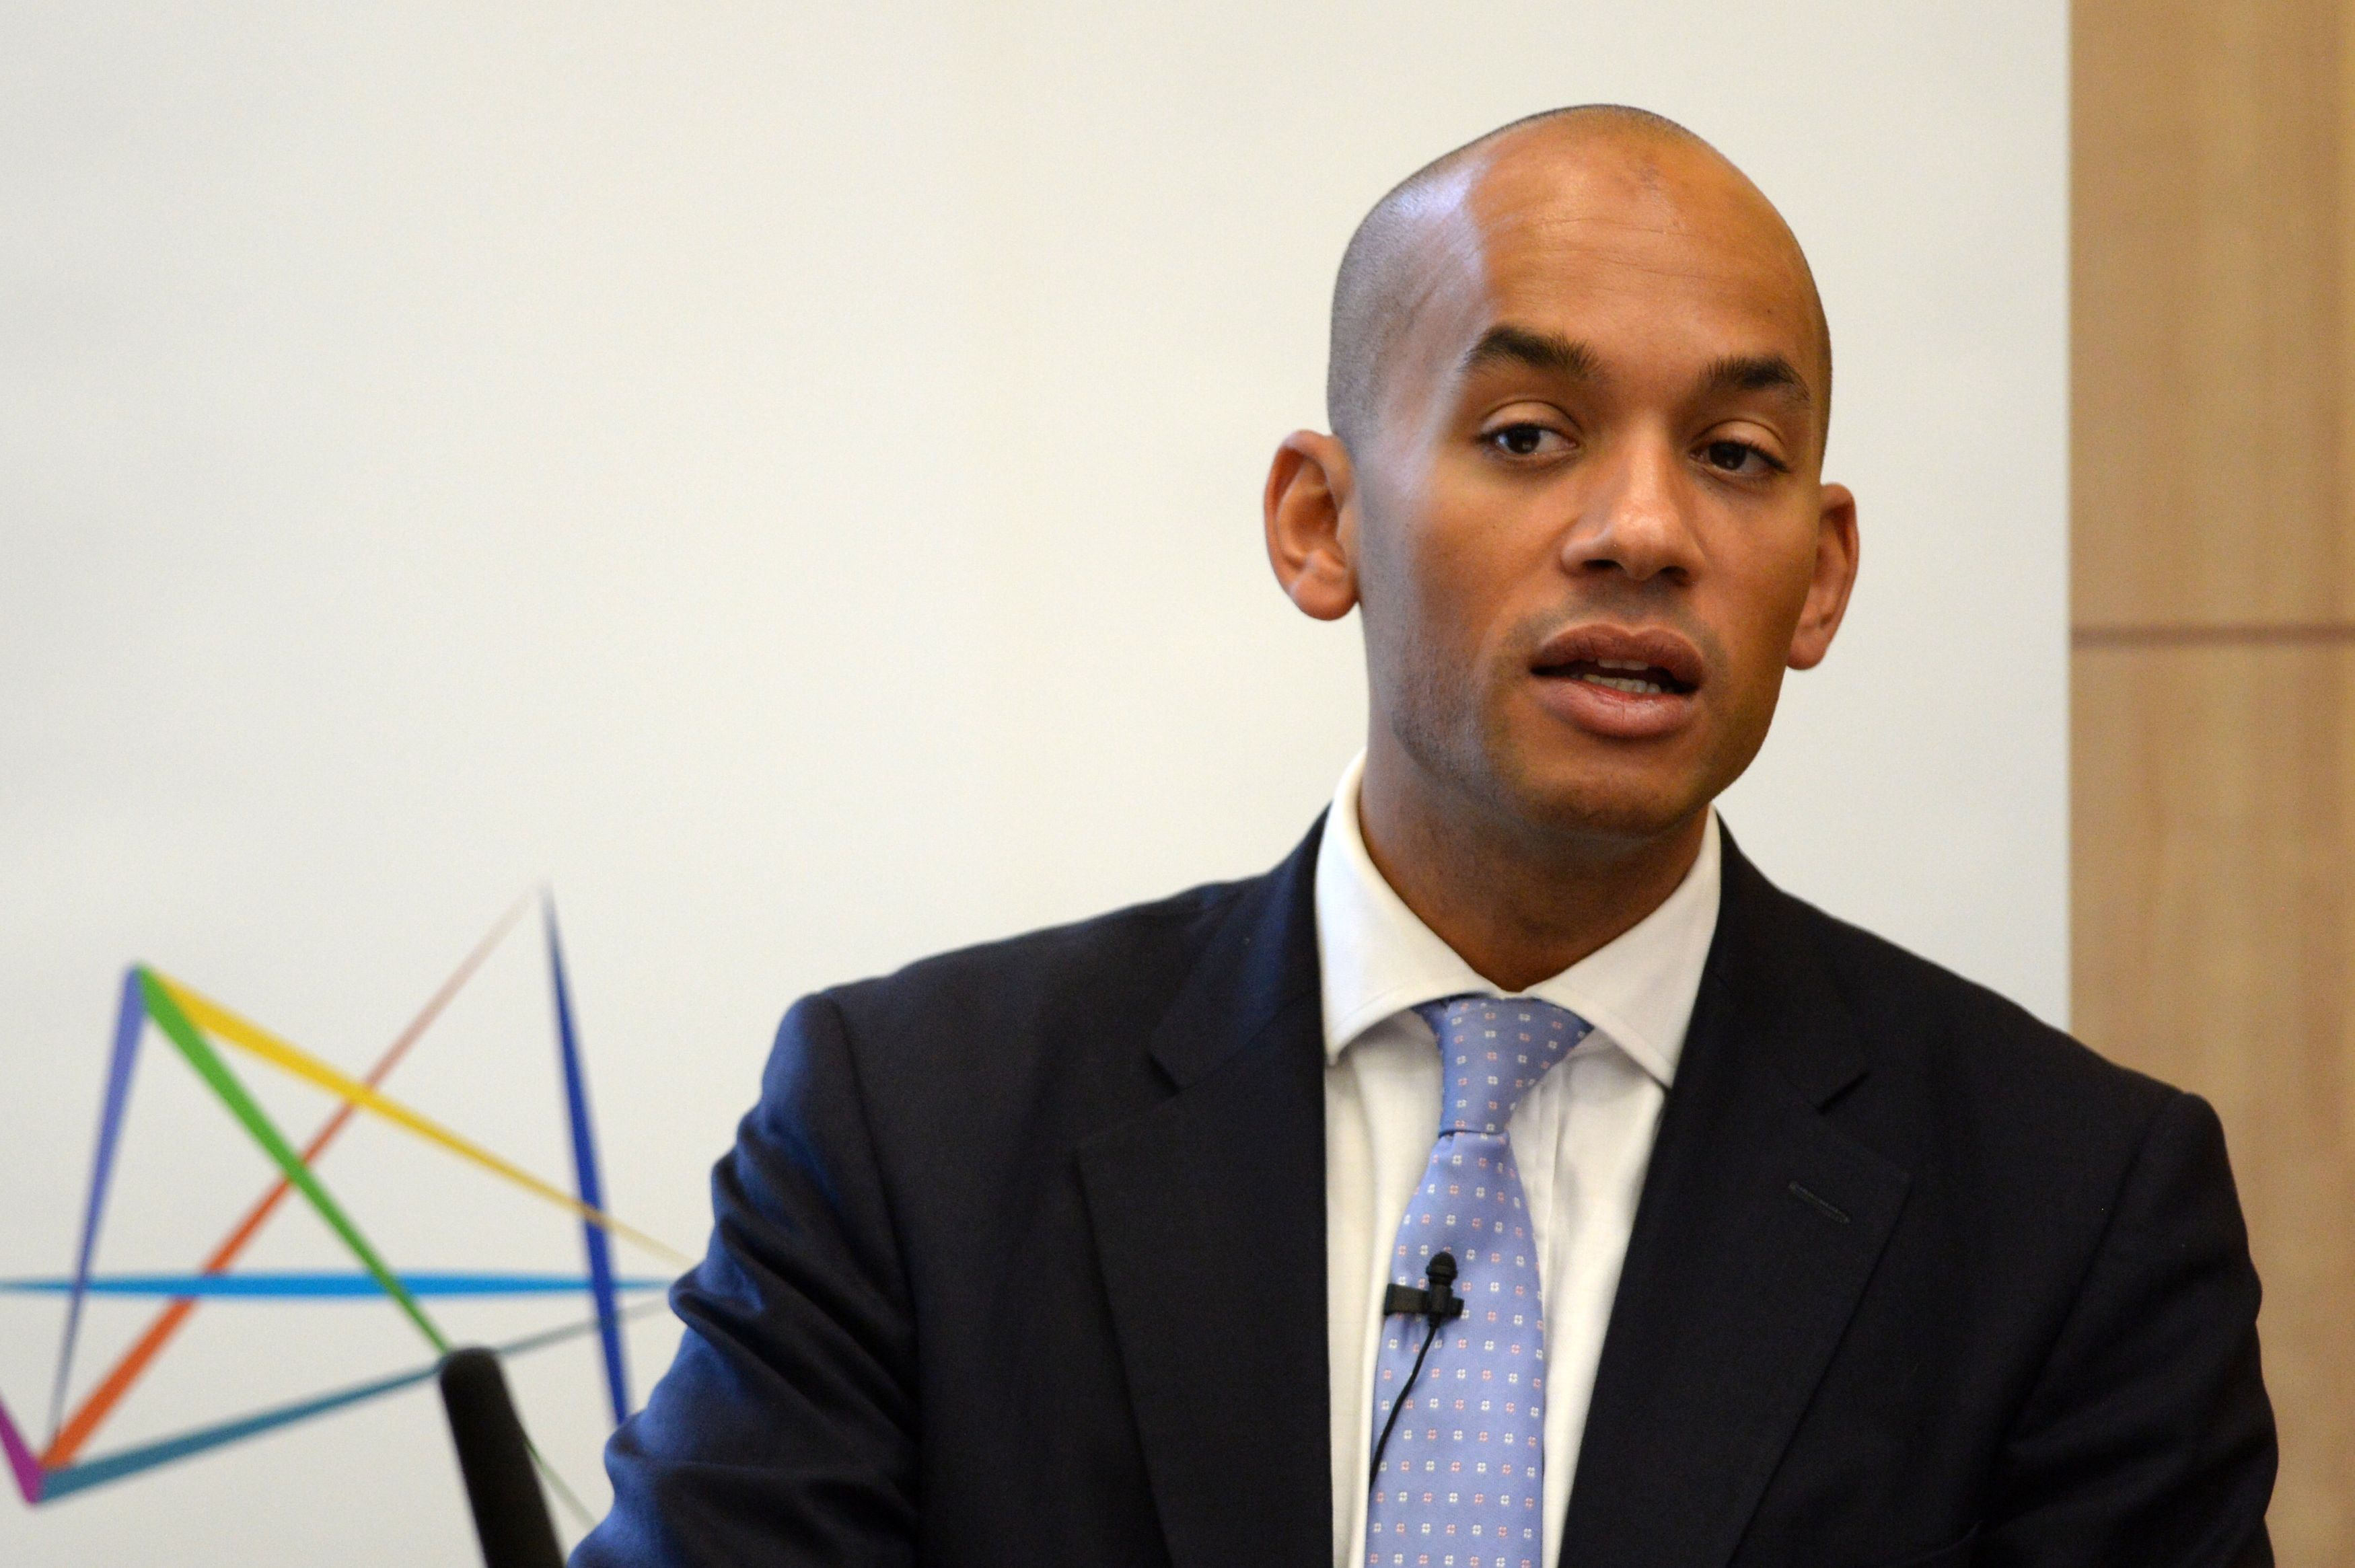 Chuka Umunna Calls For Youth Knife Violence To Be Treated 'Like A